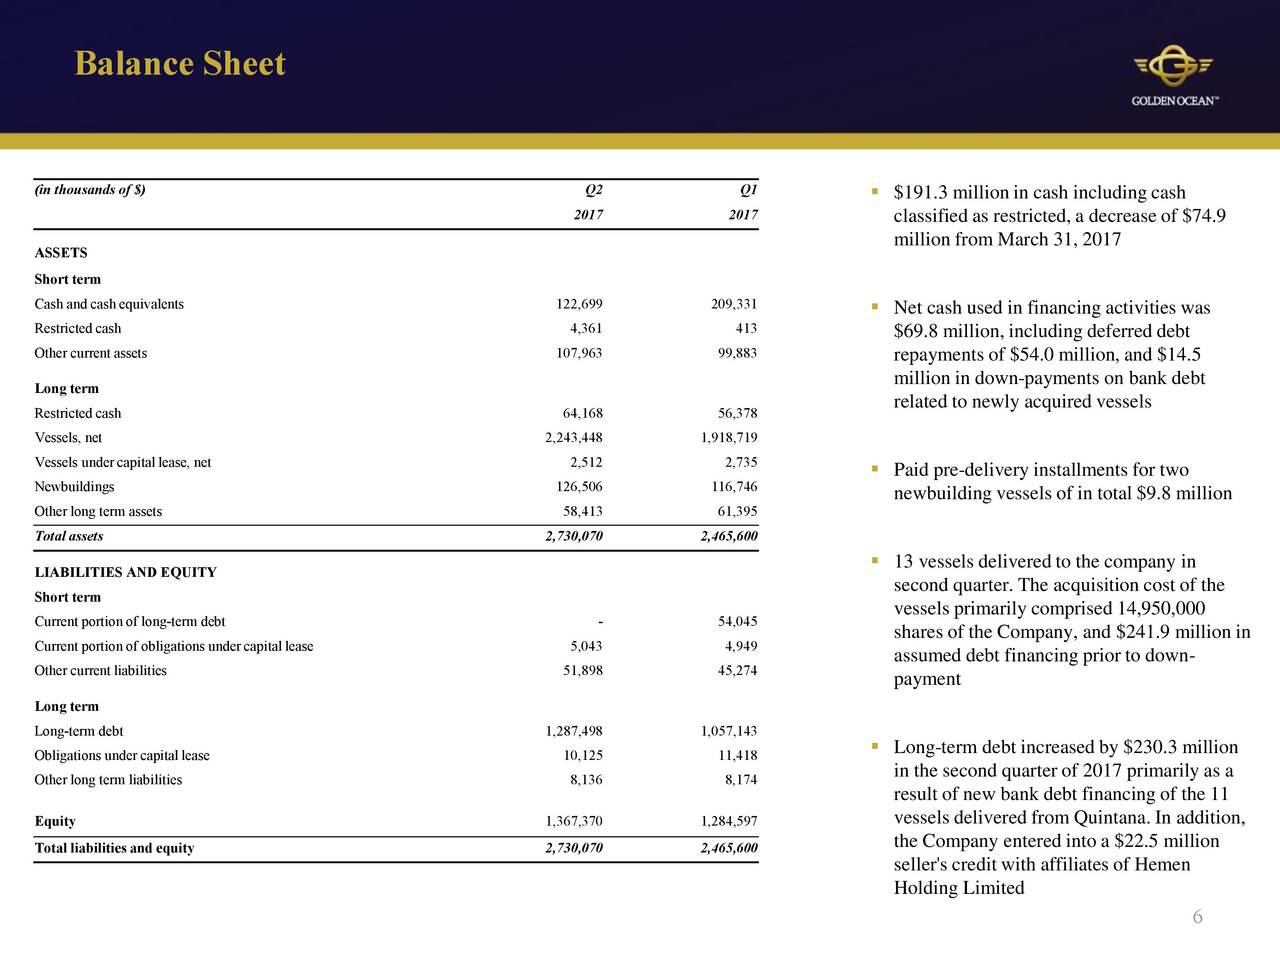 golden limited s balance sheet Balance sheet for golden ocean group limited (gogl) $ 843 016 (+193%) volume: 4218k: long term debt: 1,179: 1,058: 908: 344: 95: deferred income tax: 2: 3: 3--other non-current liabilities: 8: 8: 9-- preferred shareholder's equity-----common shareholder's equity: 1,494: 1,239: 1,159.